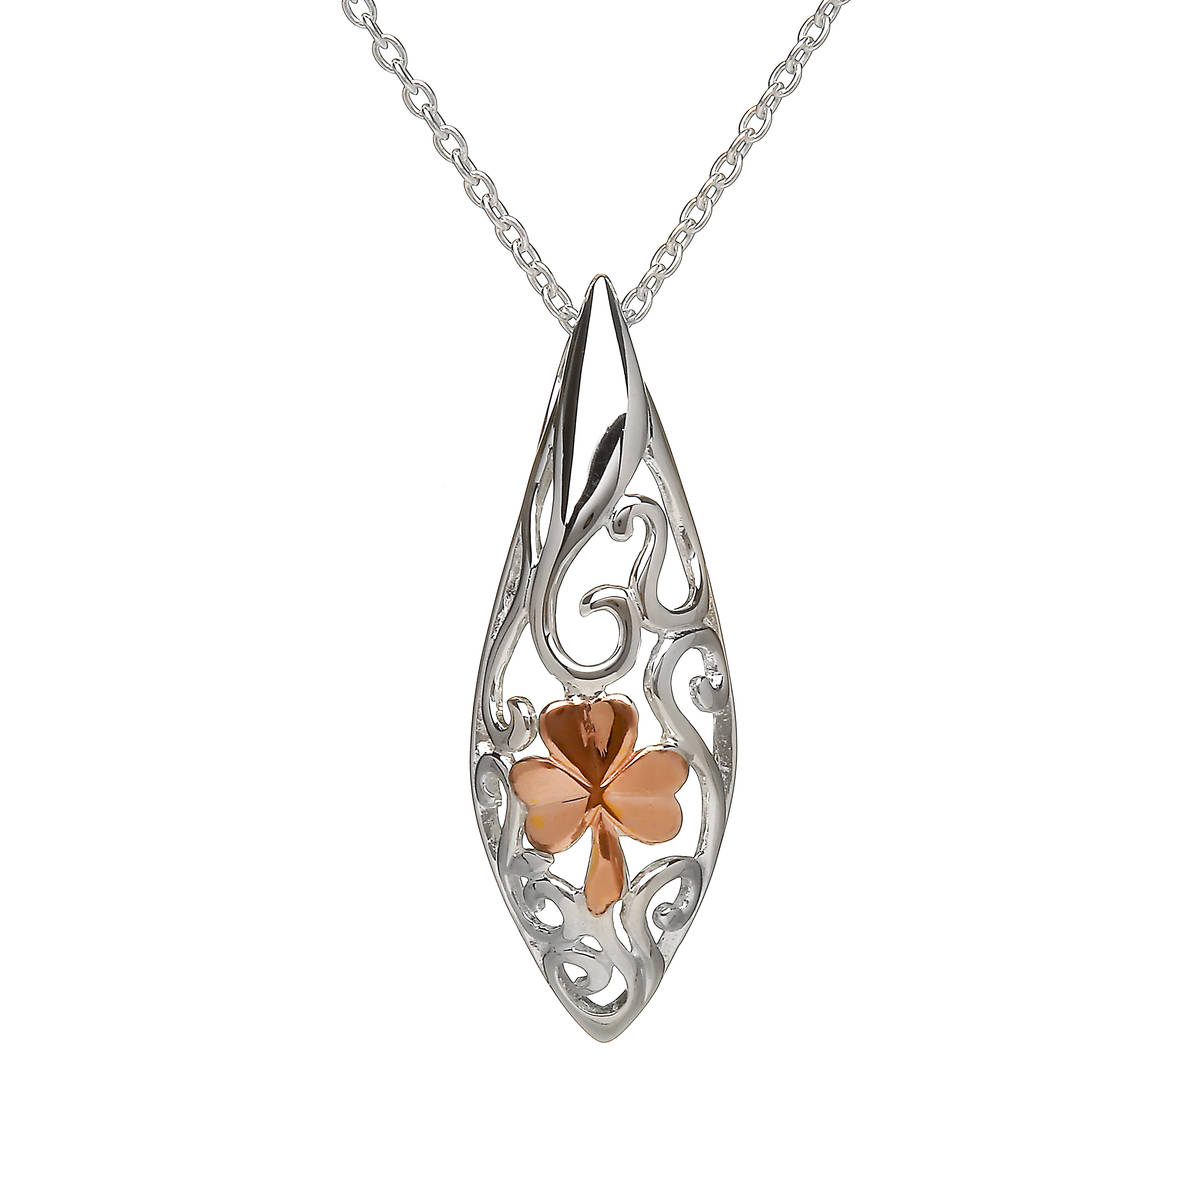 """House of Lor silver Celtic pendant with rose gold Shamrock made from rare Irish gold on 28\"""" chain.pick/dapck"""